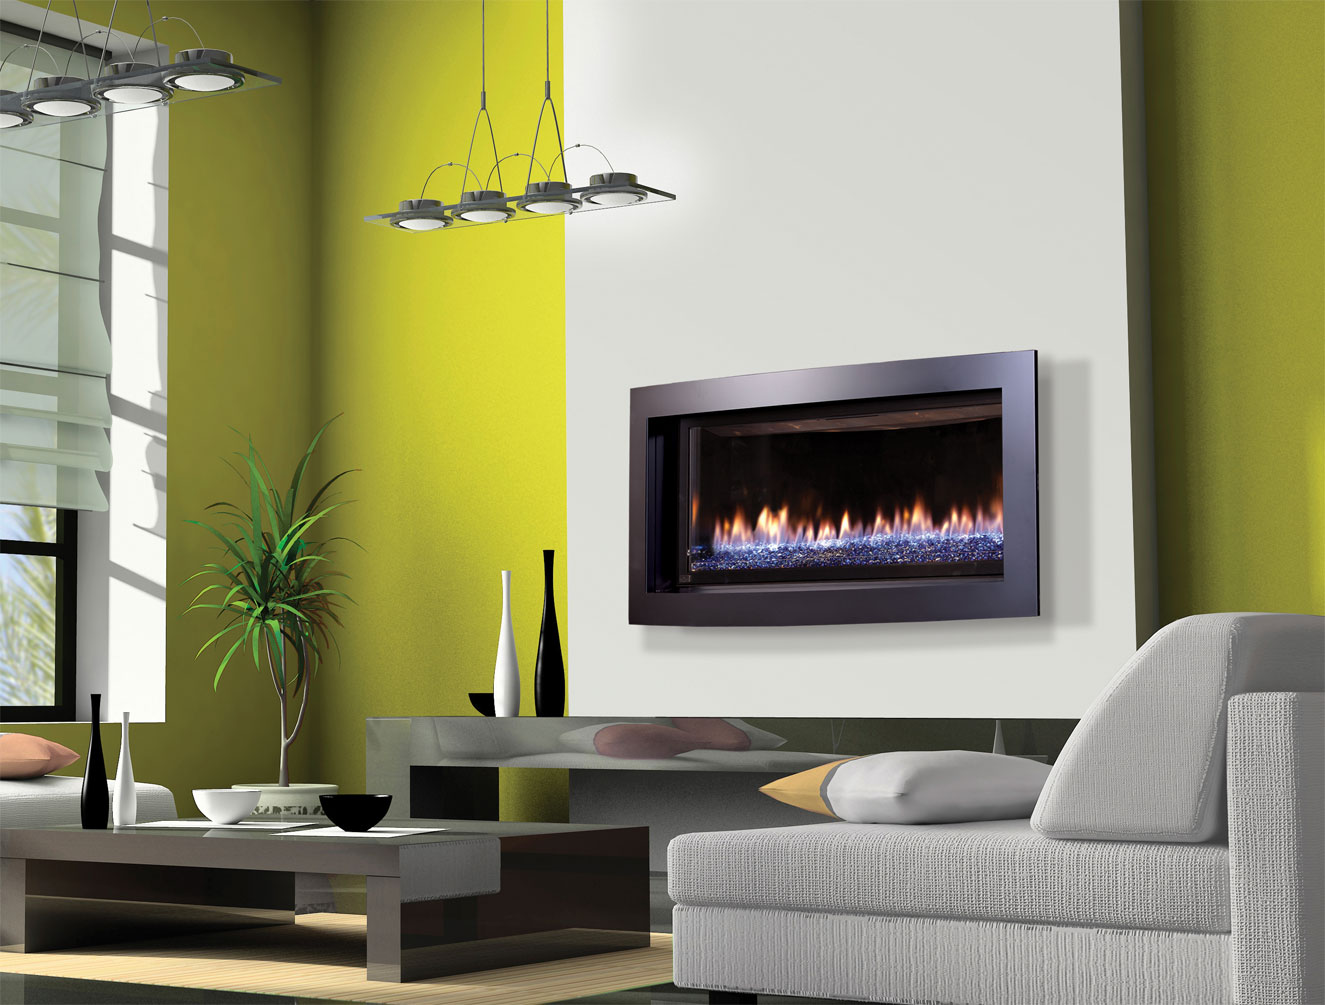 Natural gas wall mount fireplaces - Wall Mounted Natural Gas Fireplace